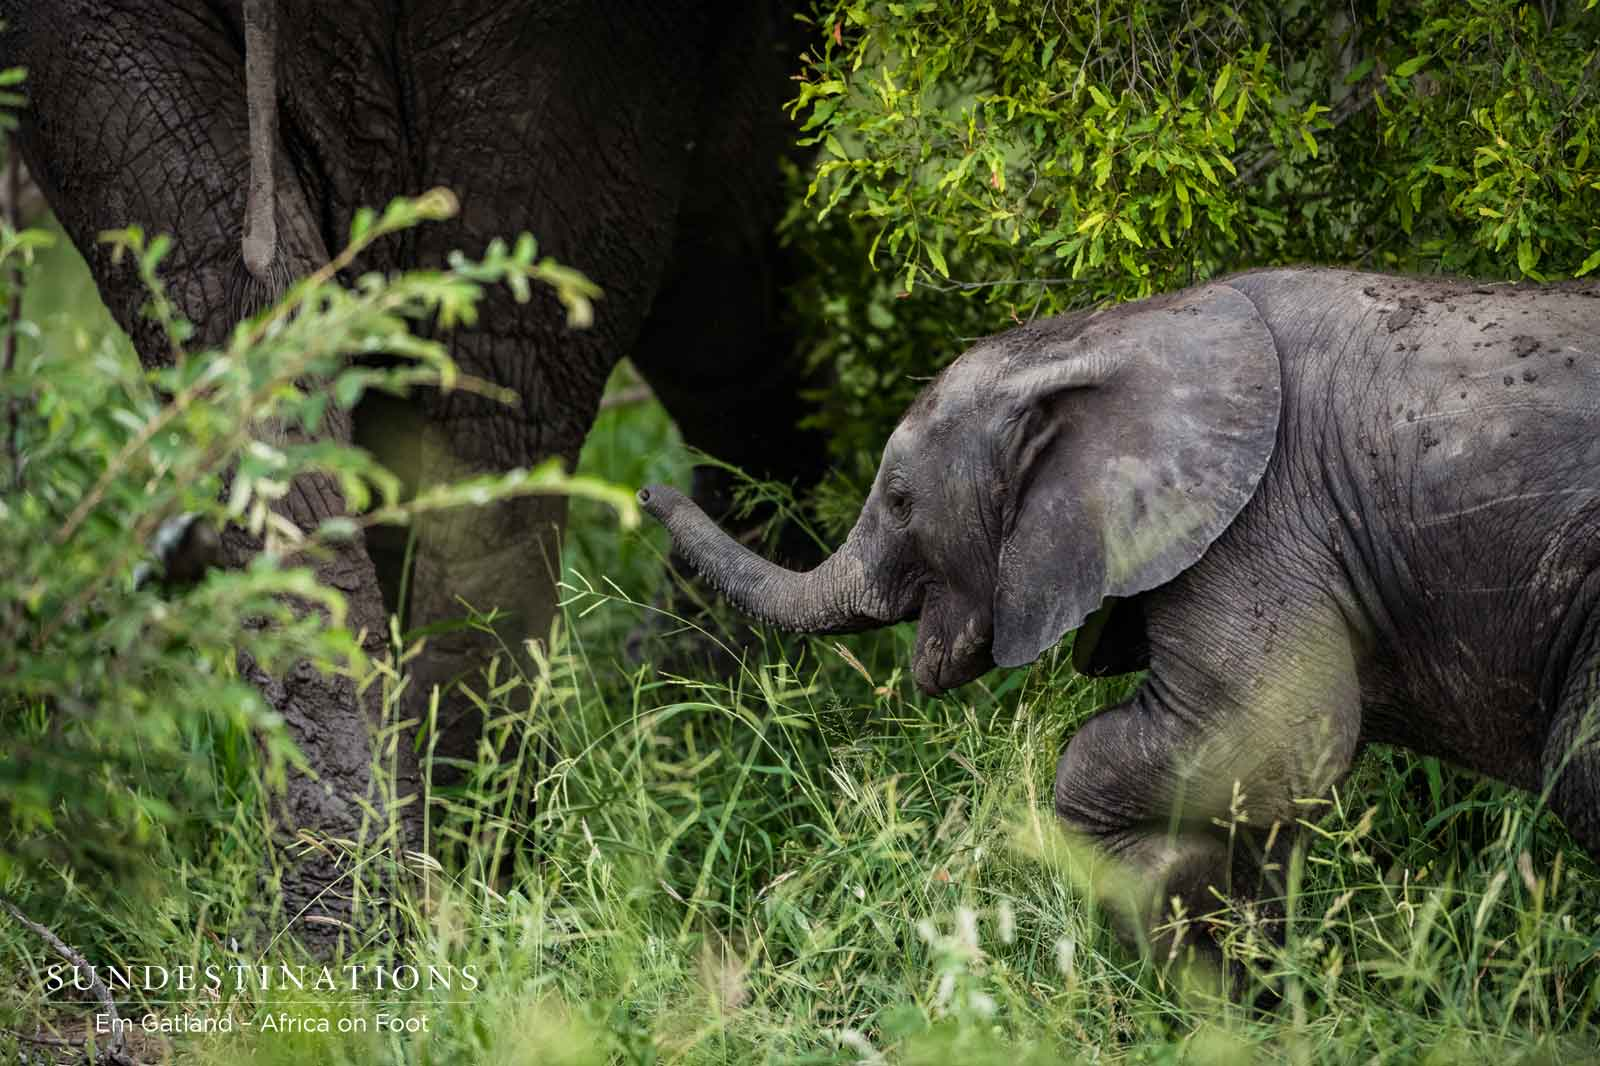 Elephant Calf at Africa on foot